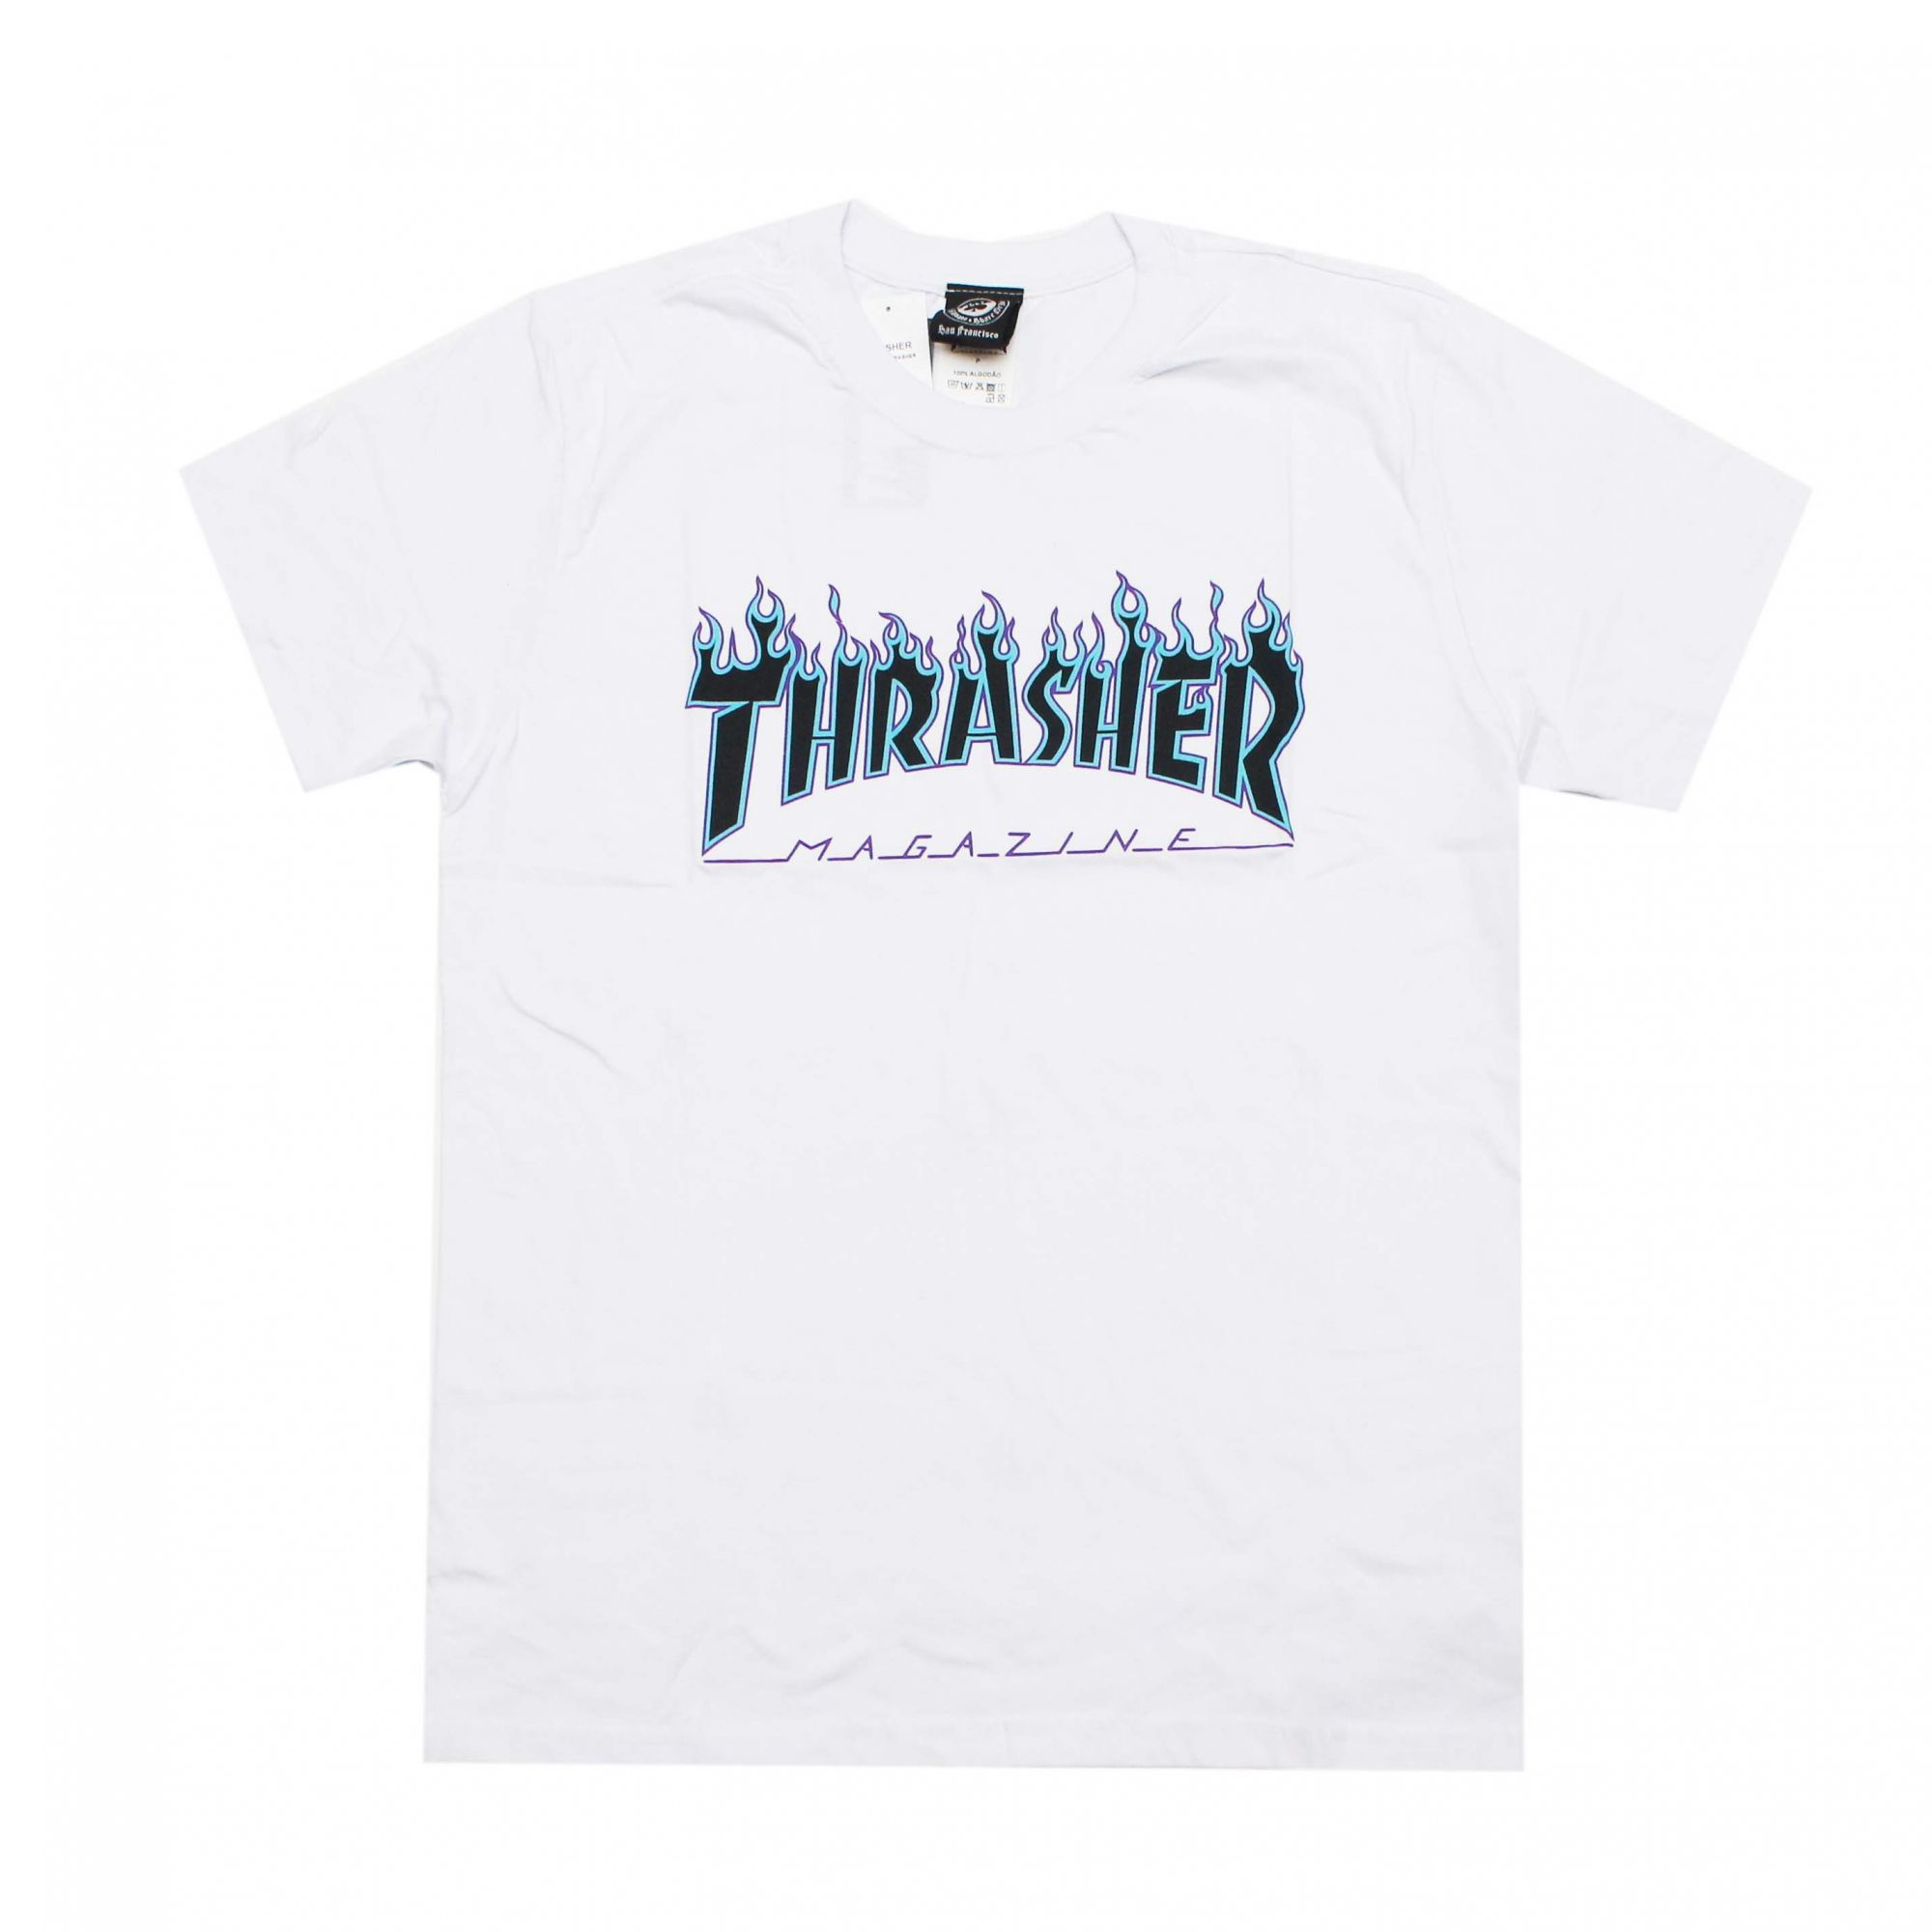 Camiseta Thrasher Magazine Purple Flame - Branco